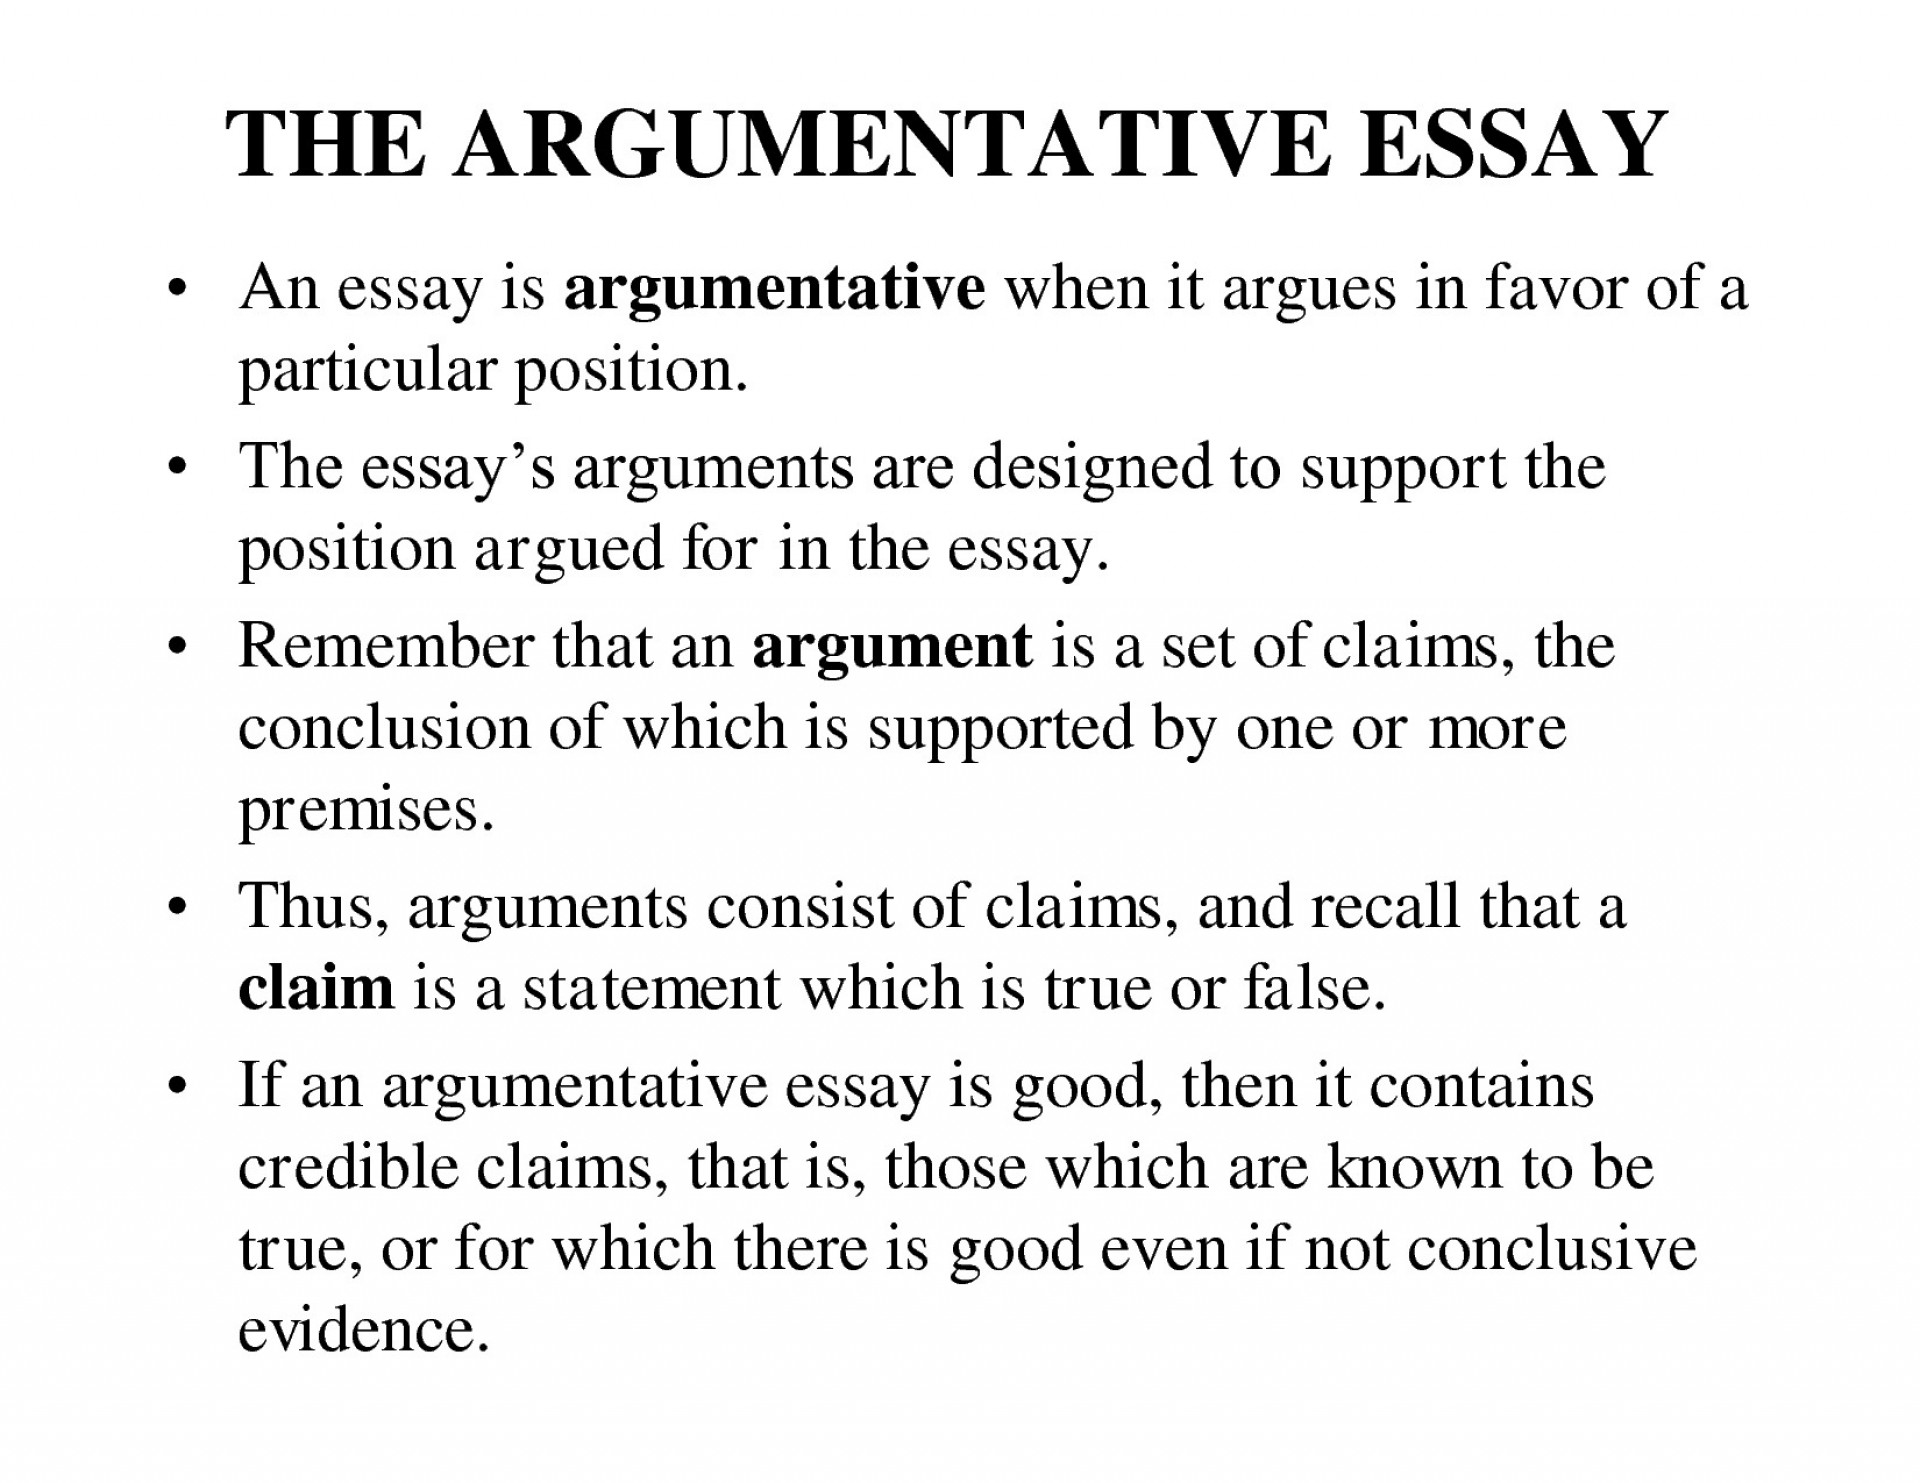 001 Essay Example Bombastic Words For Writing Coursework Service Fdpaperyvsi To Include In An Argumentative How Write Conclusions Another Word Conclusion Thr Impressive Use Essays Avoid Wonderful 1920